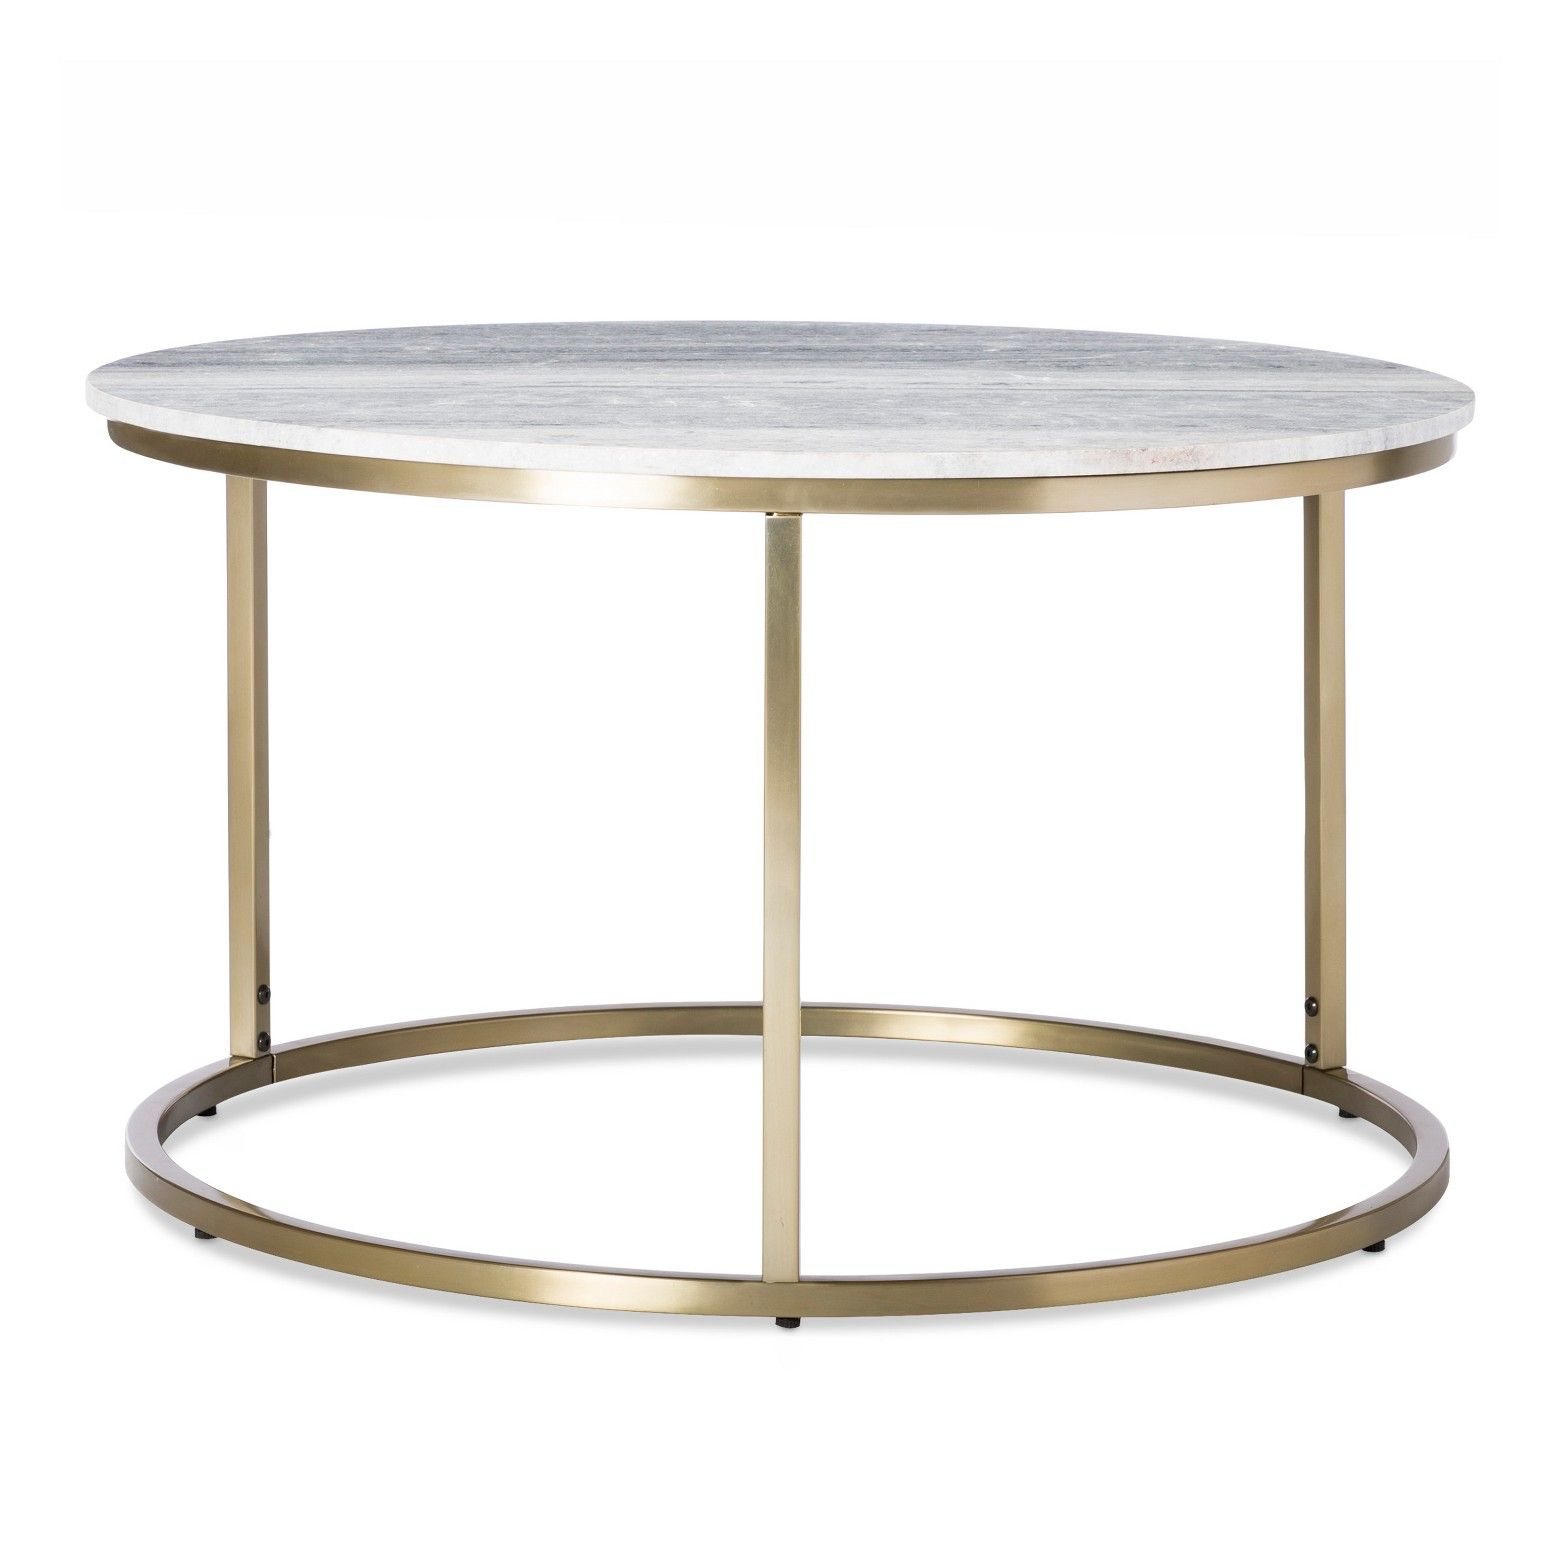 coffee tables target find great selection wood metal accent table storage more free shipping orders small rectangle patio side with curved mirrored bedside low white round outdoor